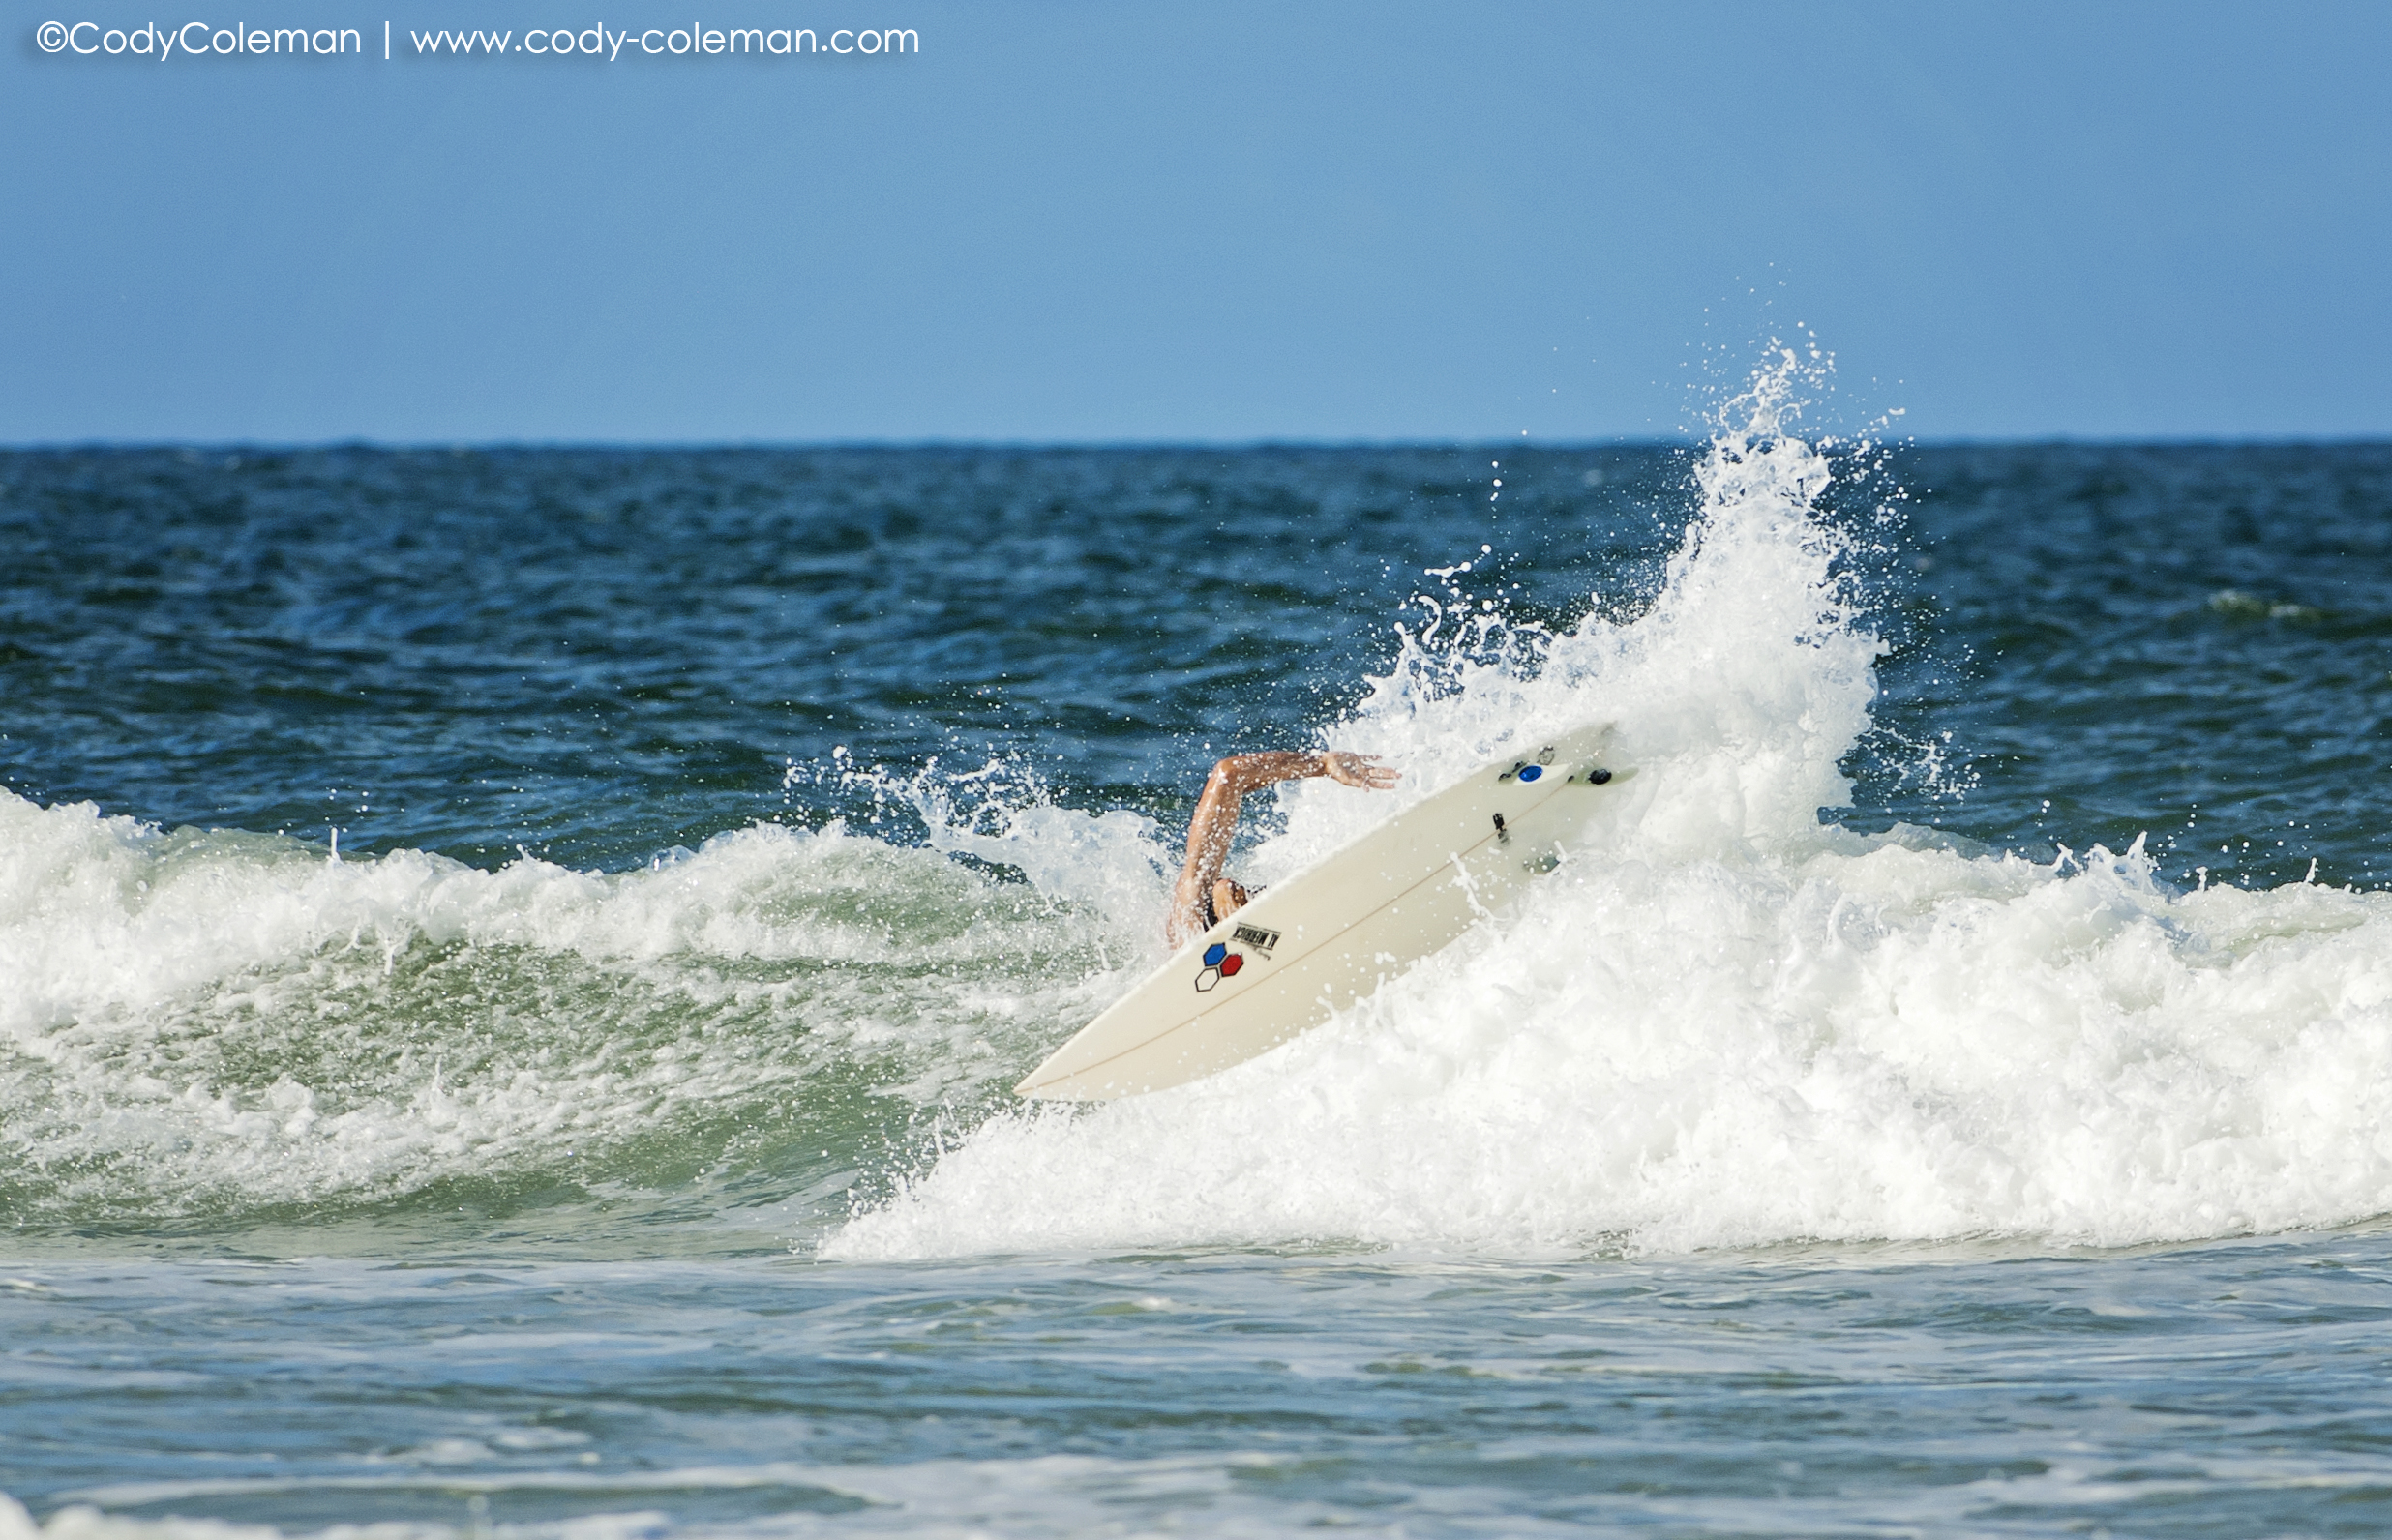 Beener came so close to landing this blow tail layback.